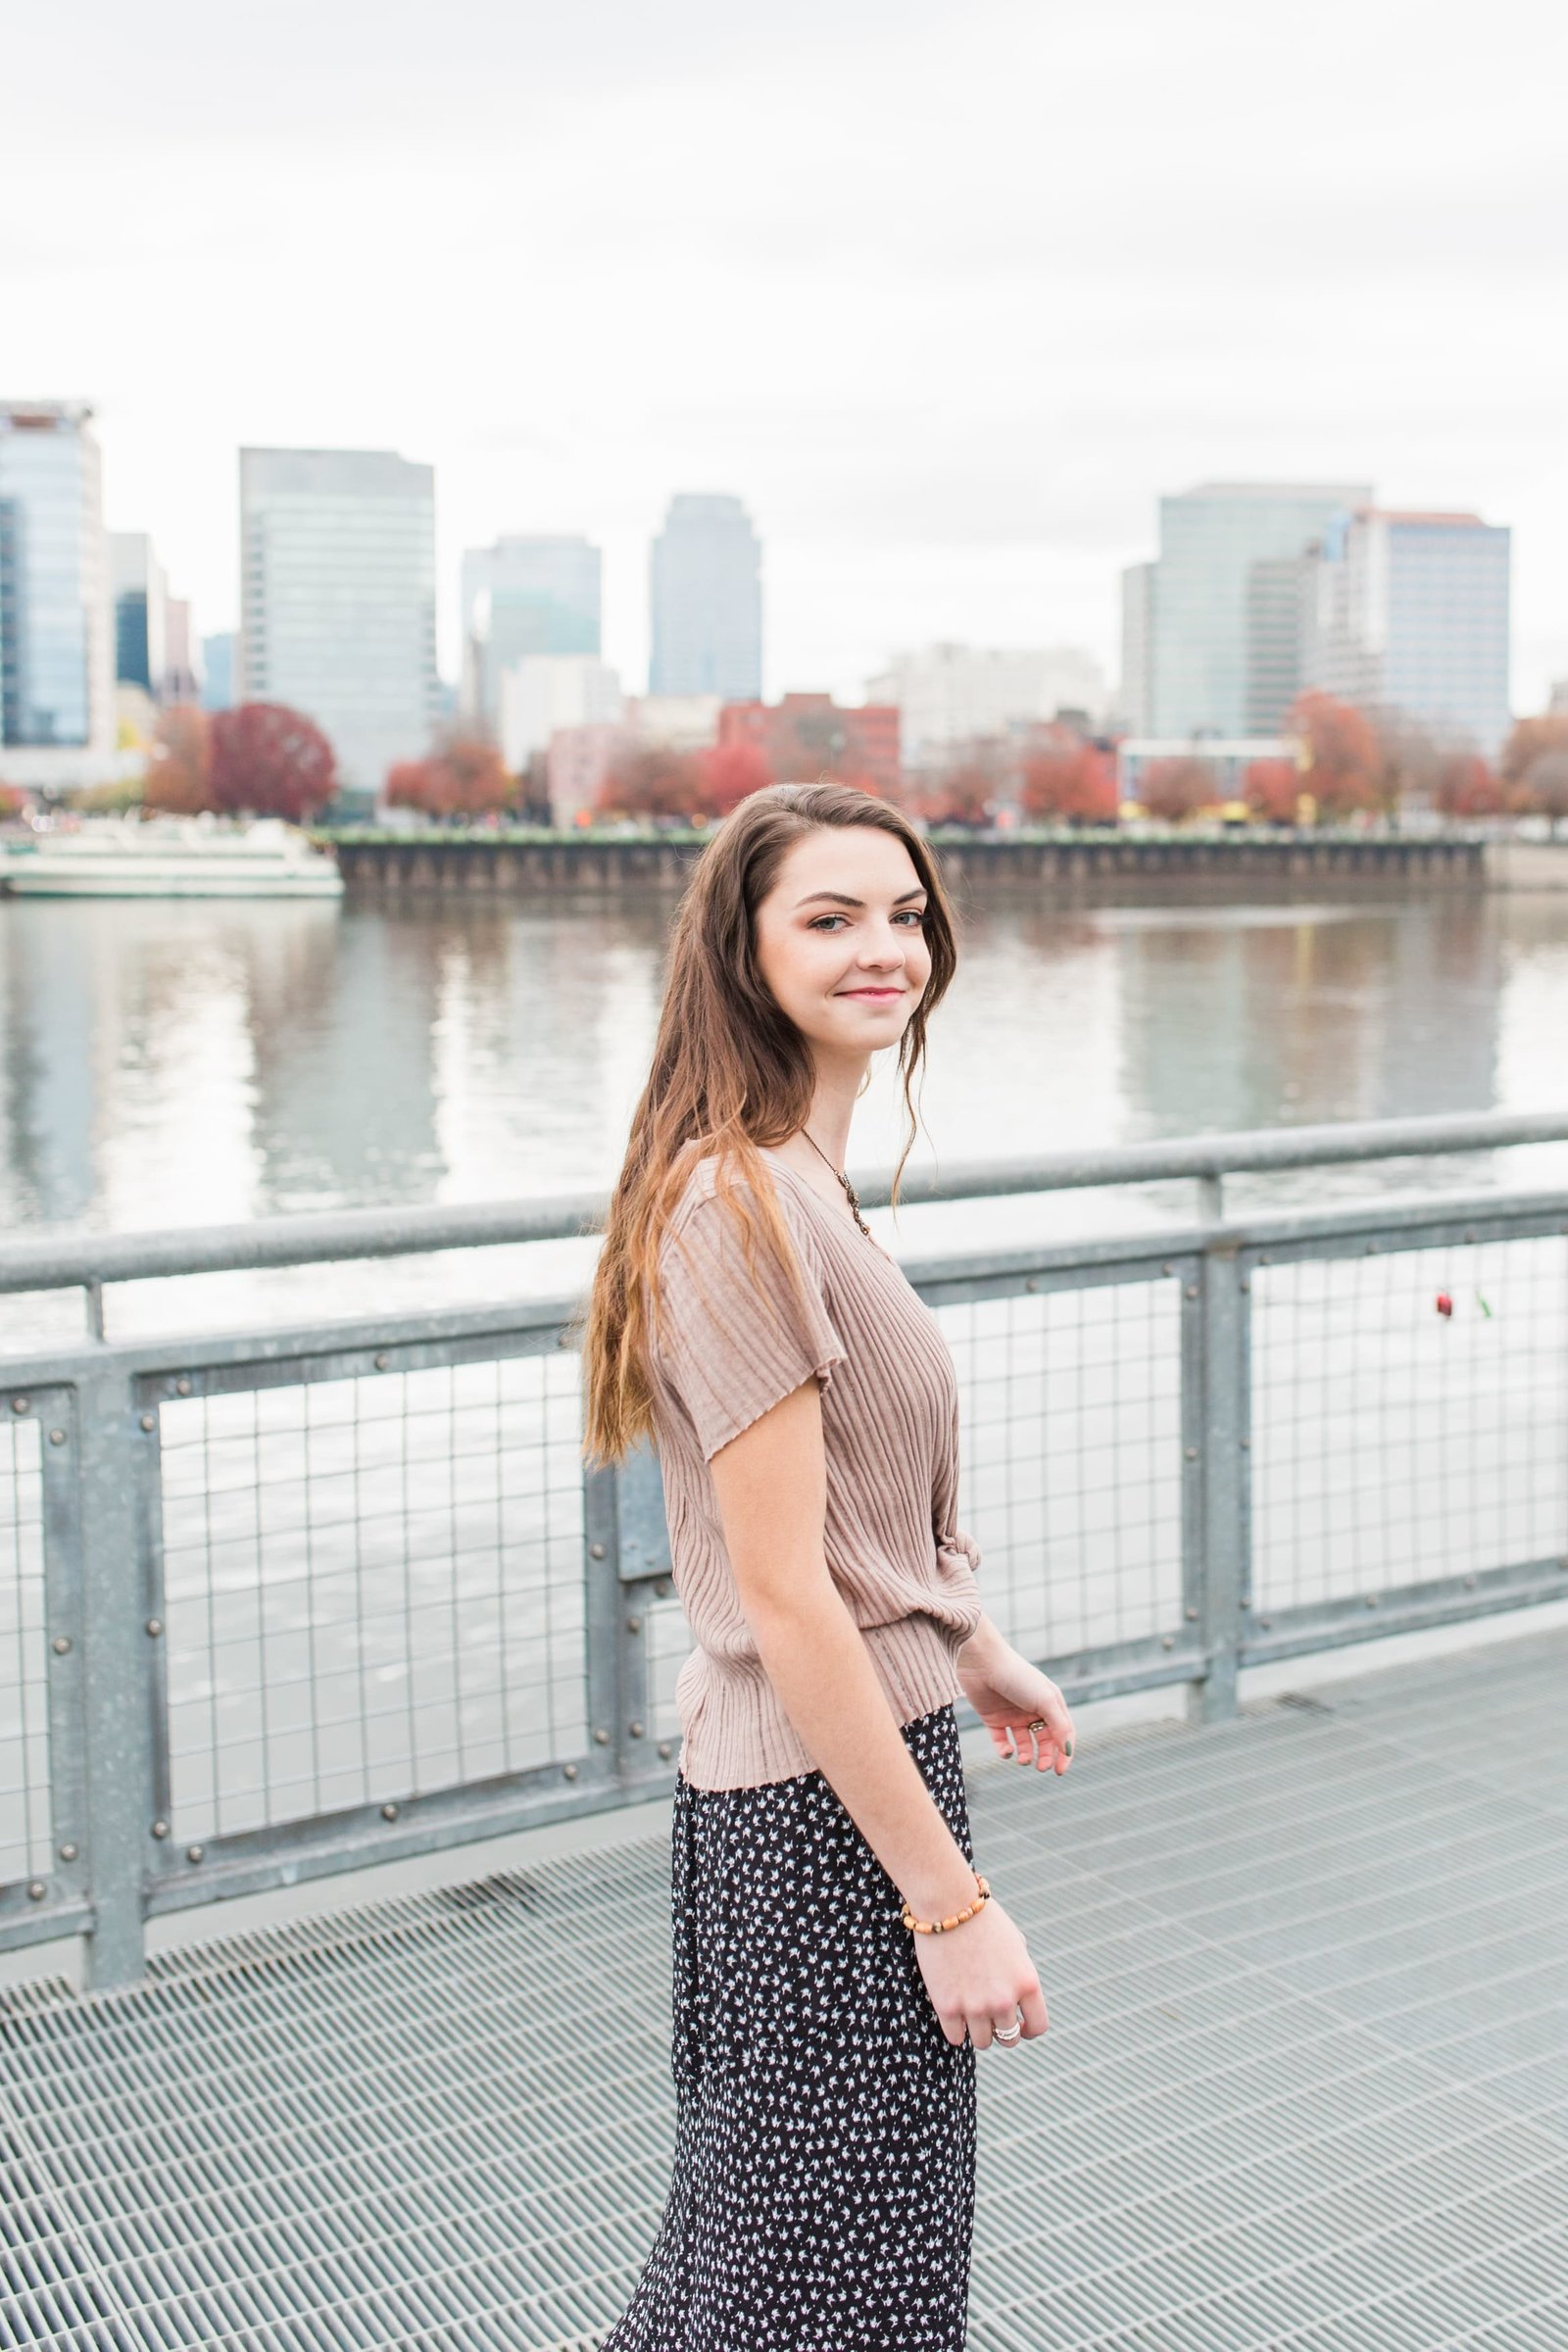 High school senior photos at Portland waterfront